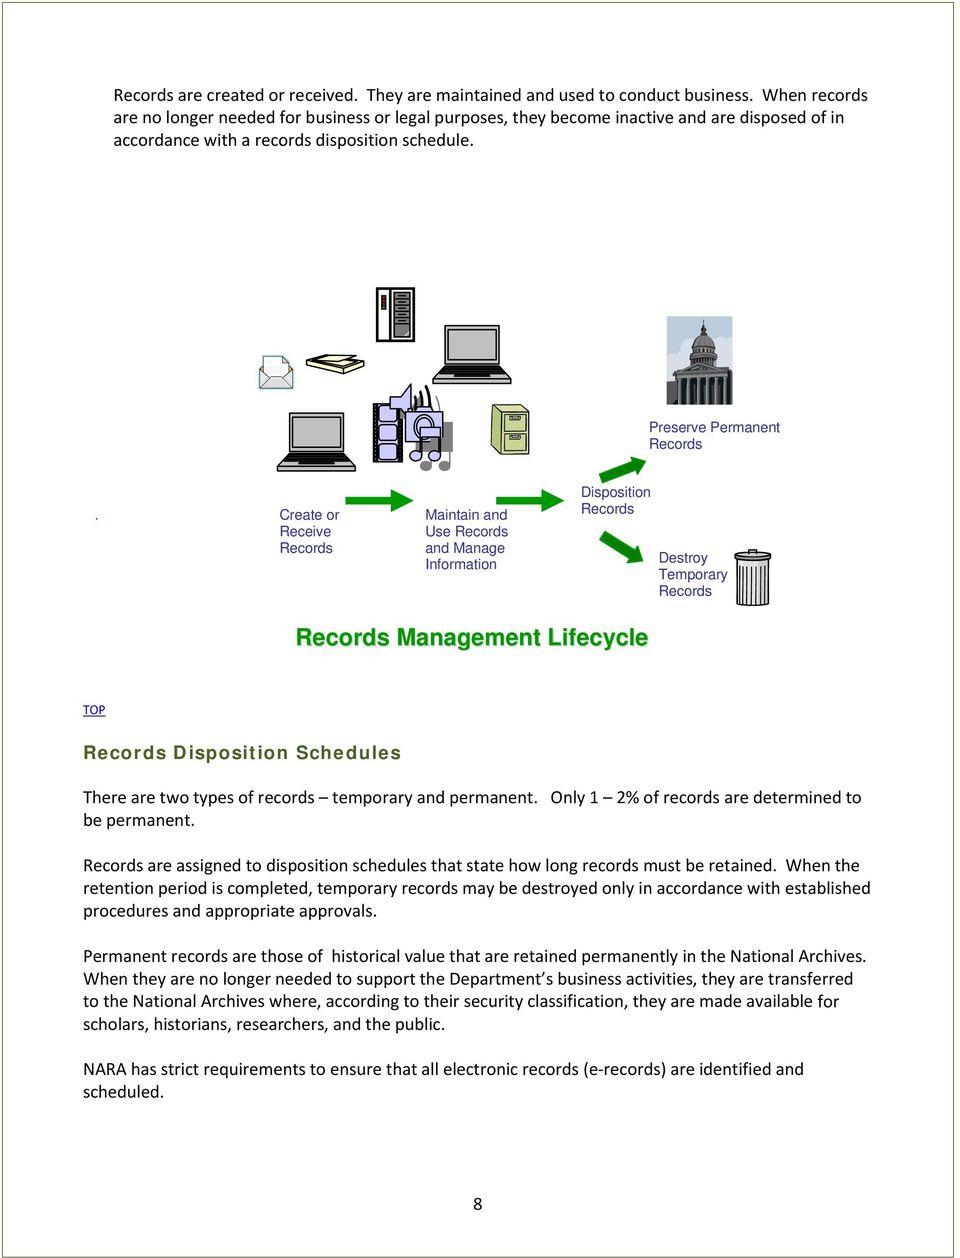 Create or Receive Records Maintain and Use Records and Manage Information Disposition Records Destroy Temporary Records Records Management Lifecycle TOP Records Disposition Schedules There are two